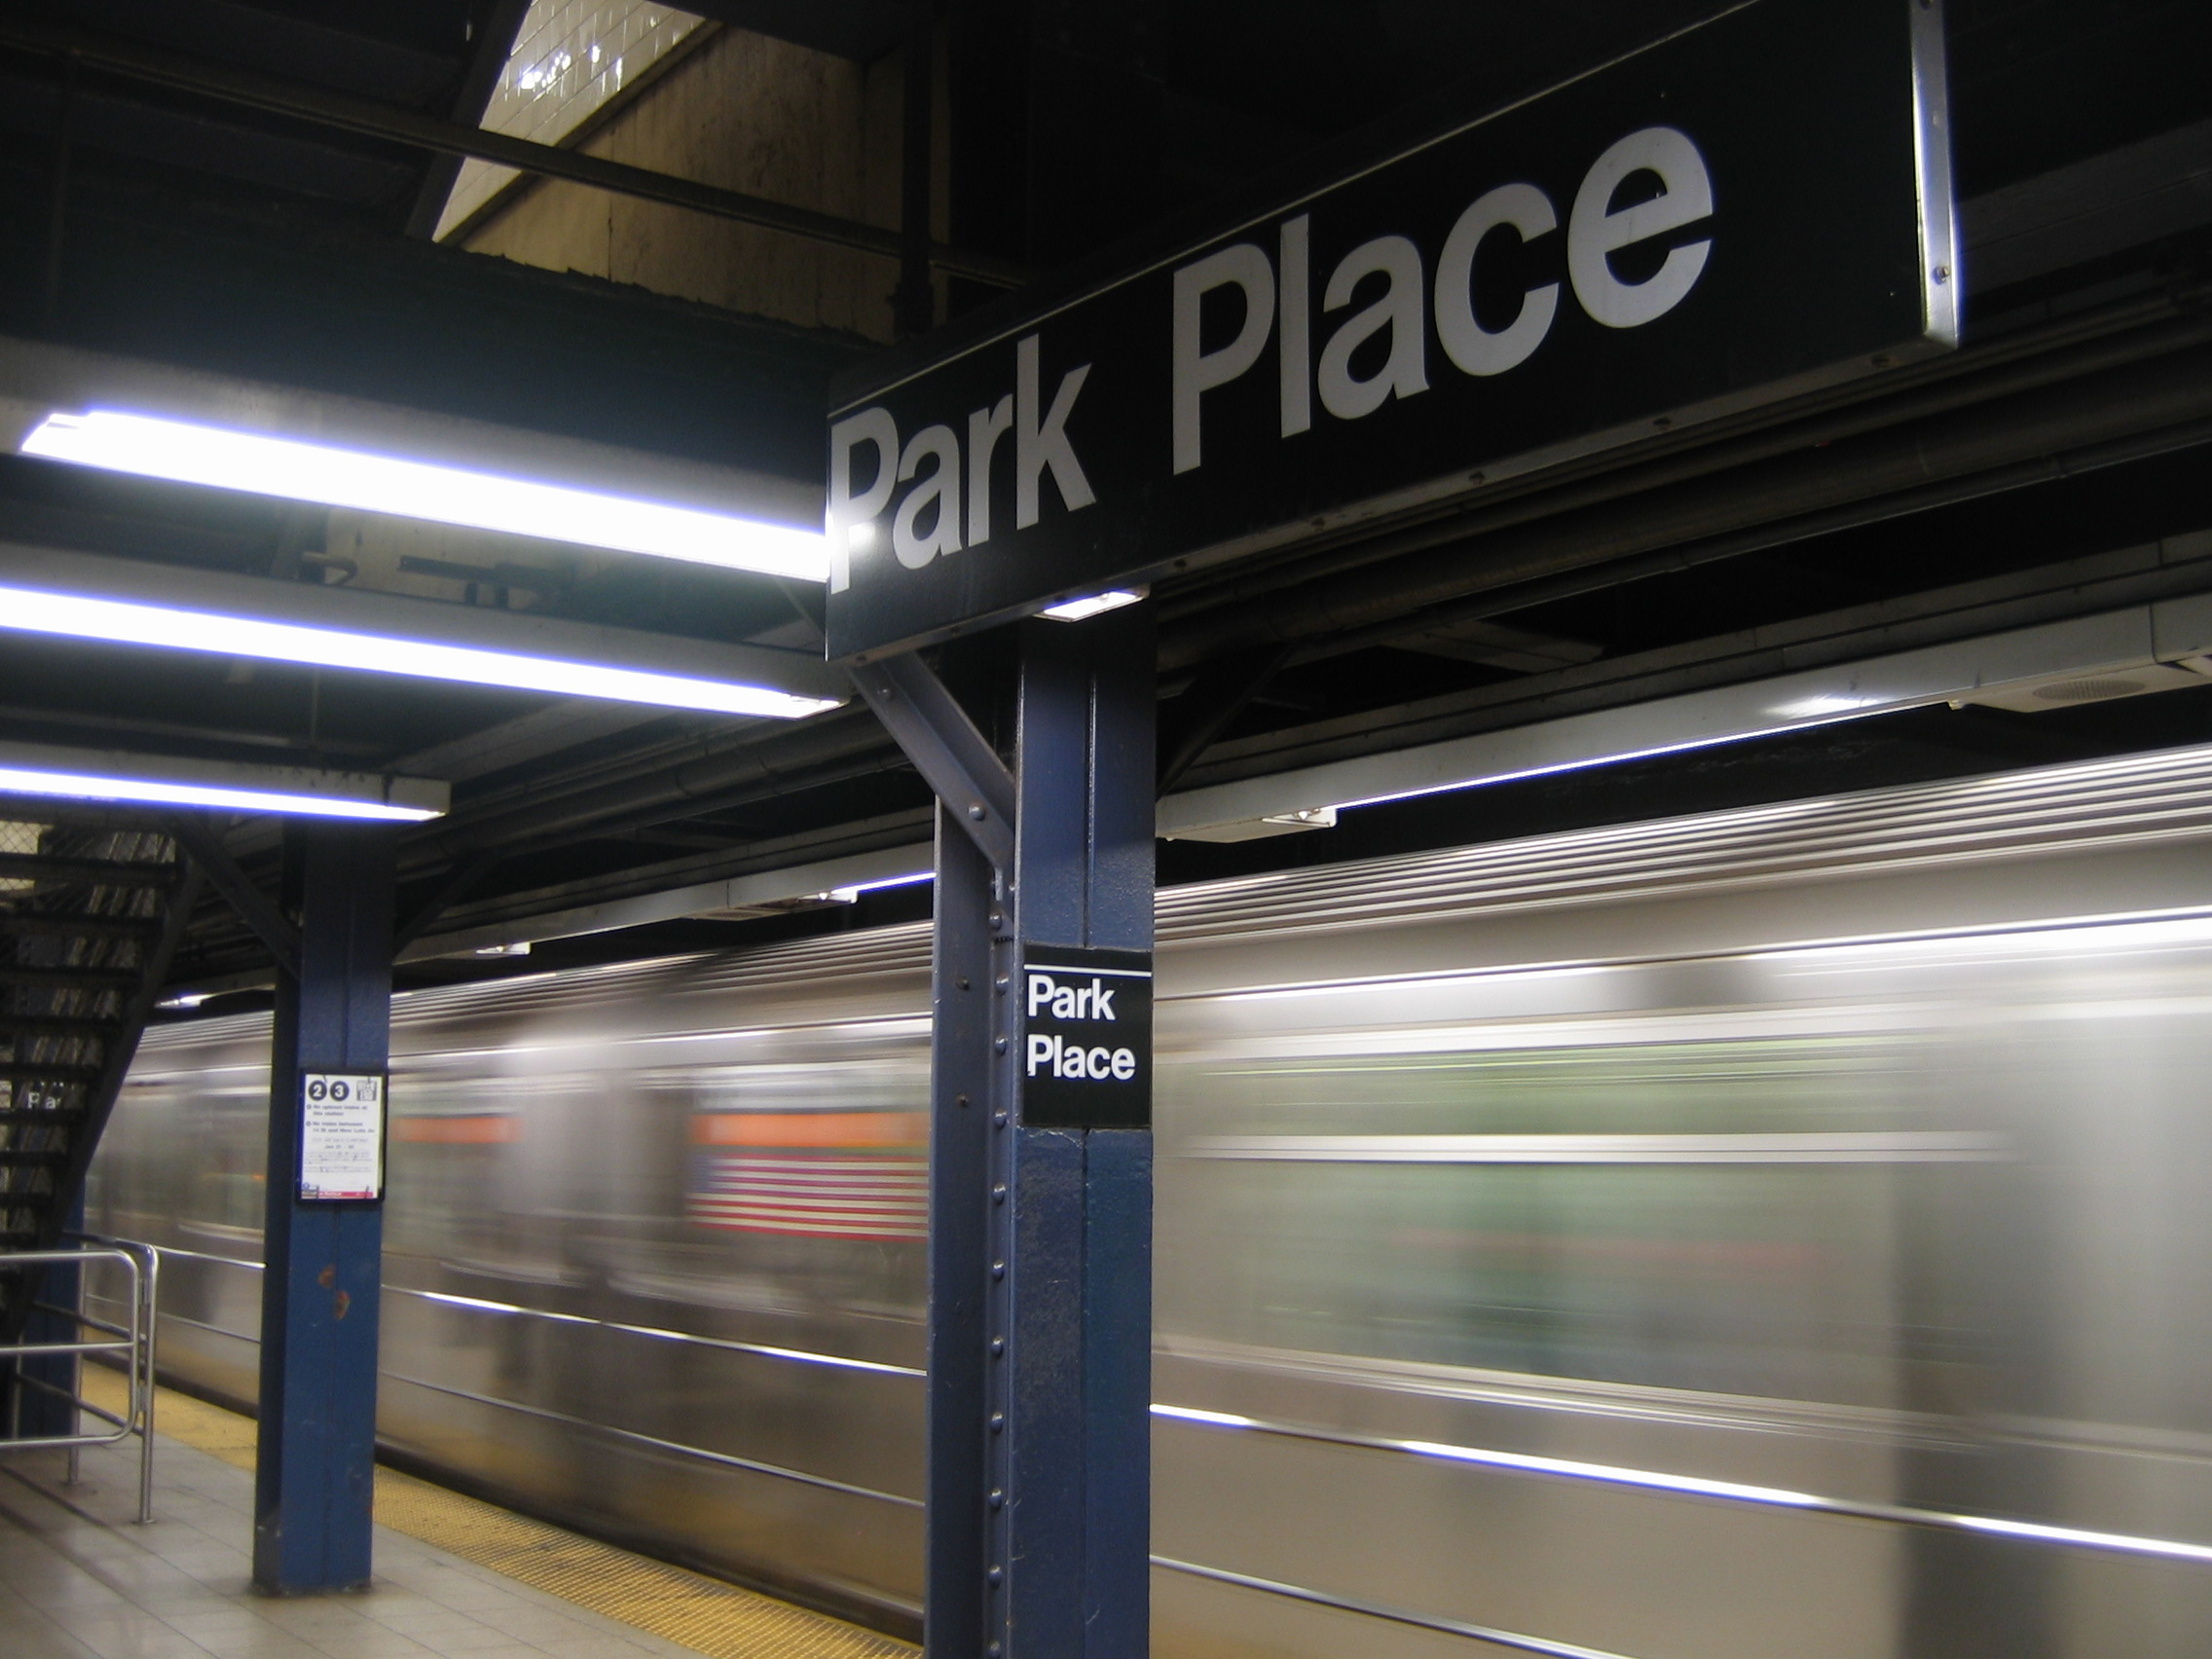 New York City subway, Park Place, http://upload.wikimedia.org/wikipedia/commons/7/7c/Nyc_subway_park_place1.jpg